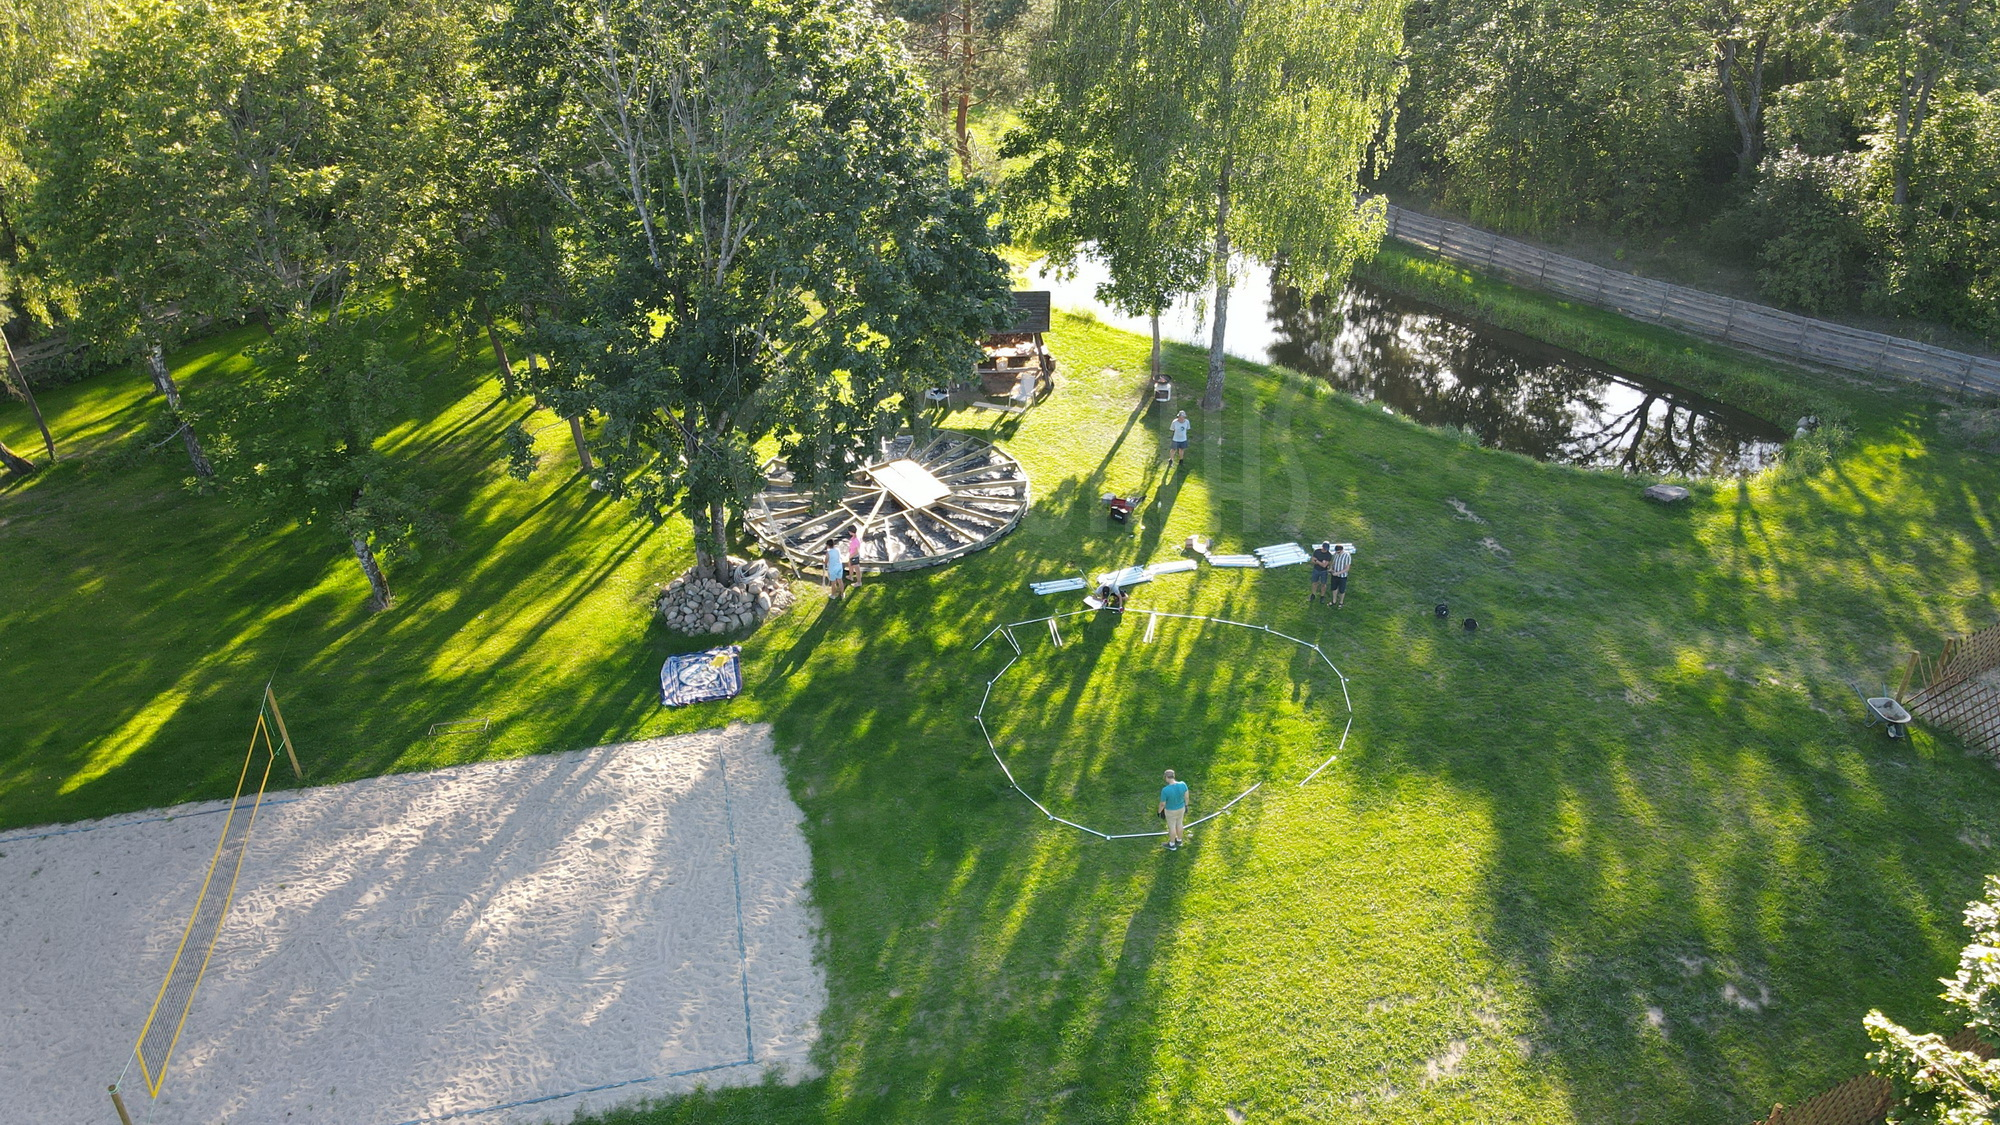 50m² Glamping Dome Ø8m & TREE DOMES   Recreational area